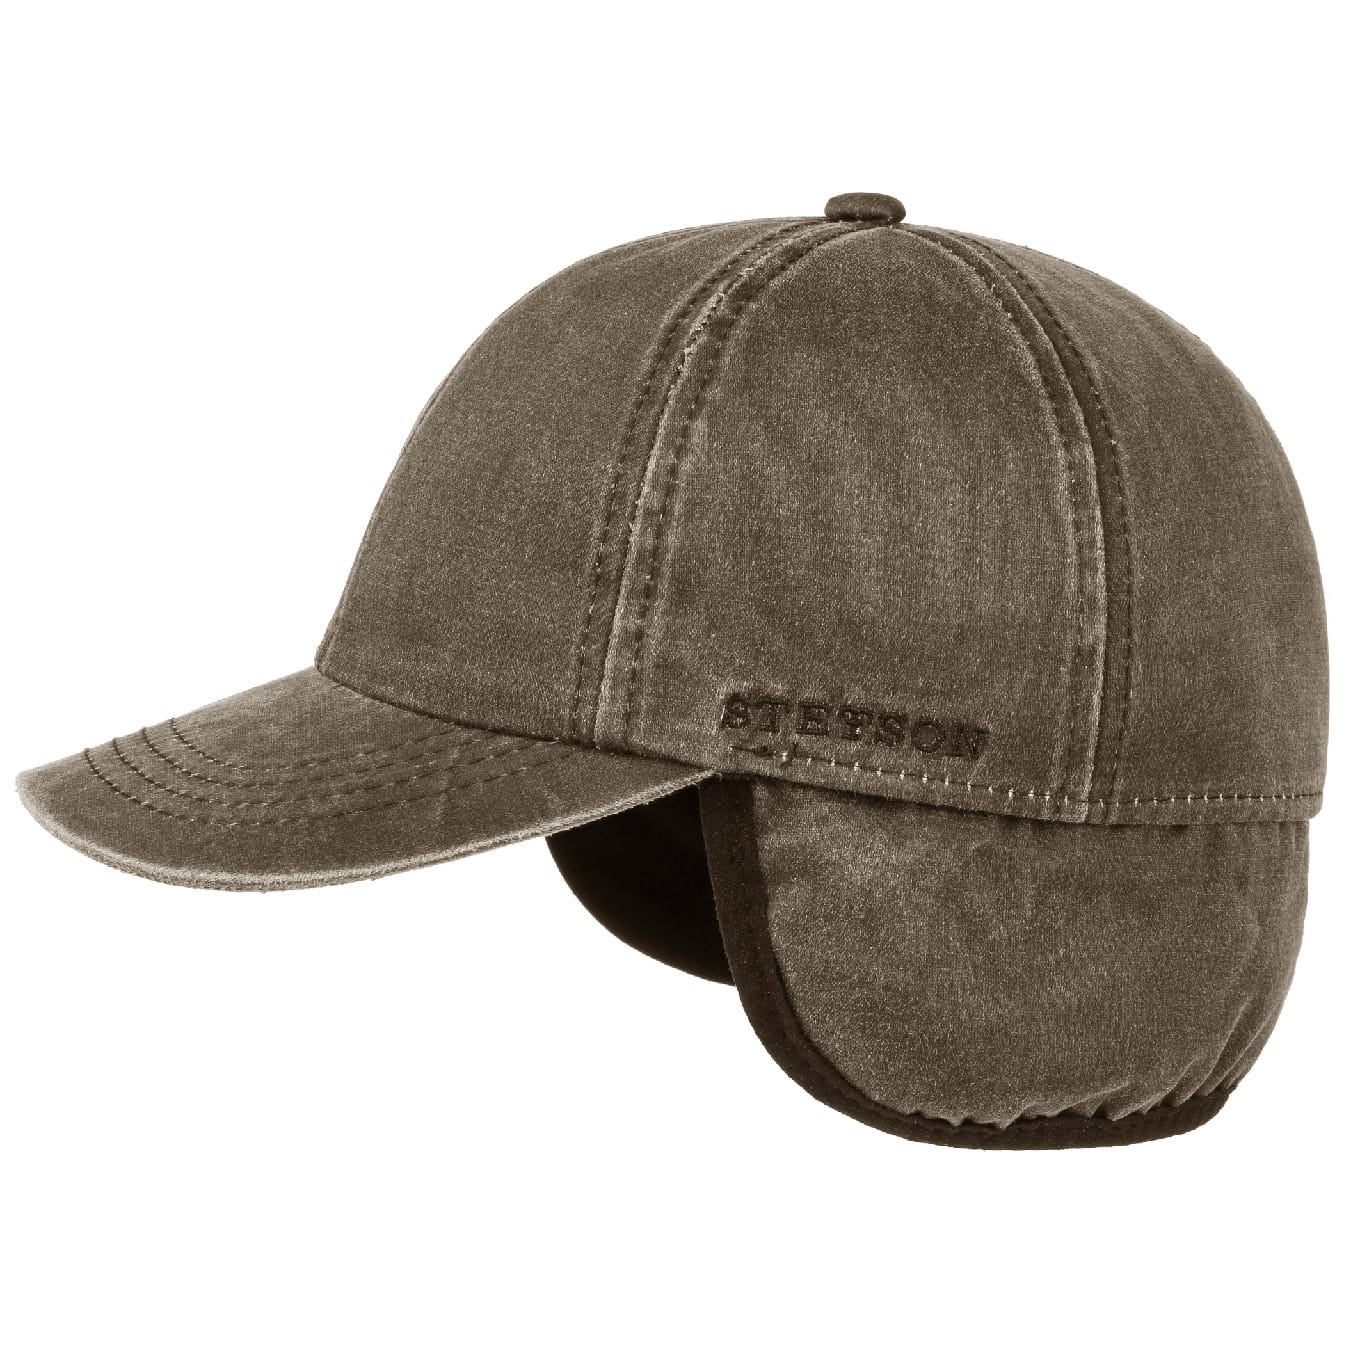 Buy Stetson Cotton Baseball Cap w. Ear Flaps from Outnorth 091eddeabcc